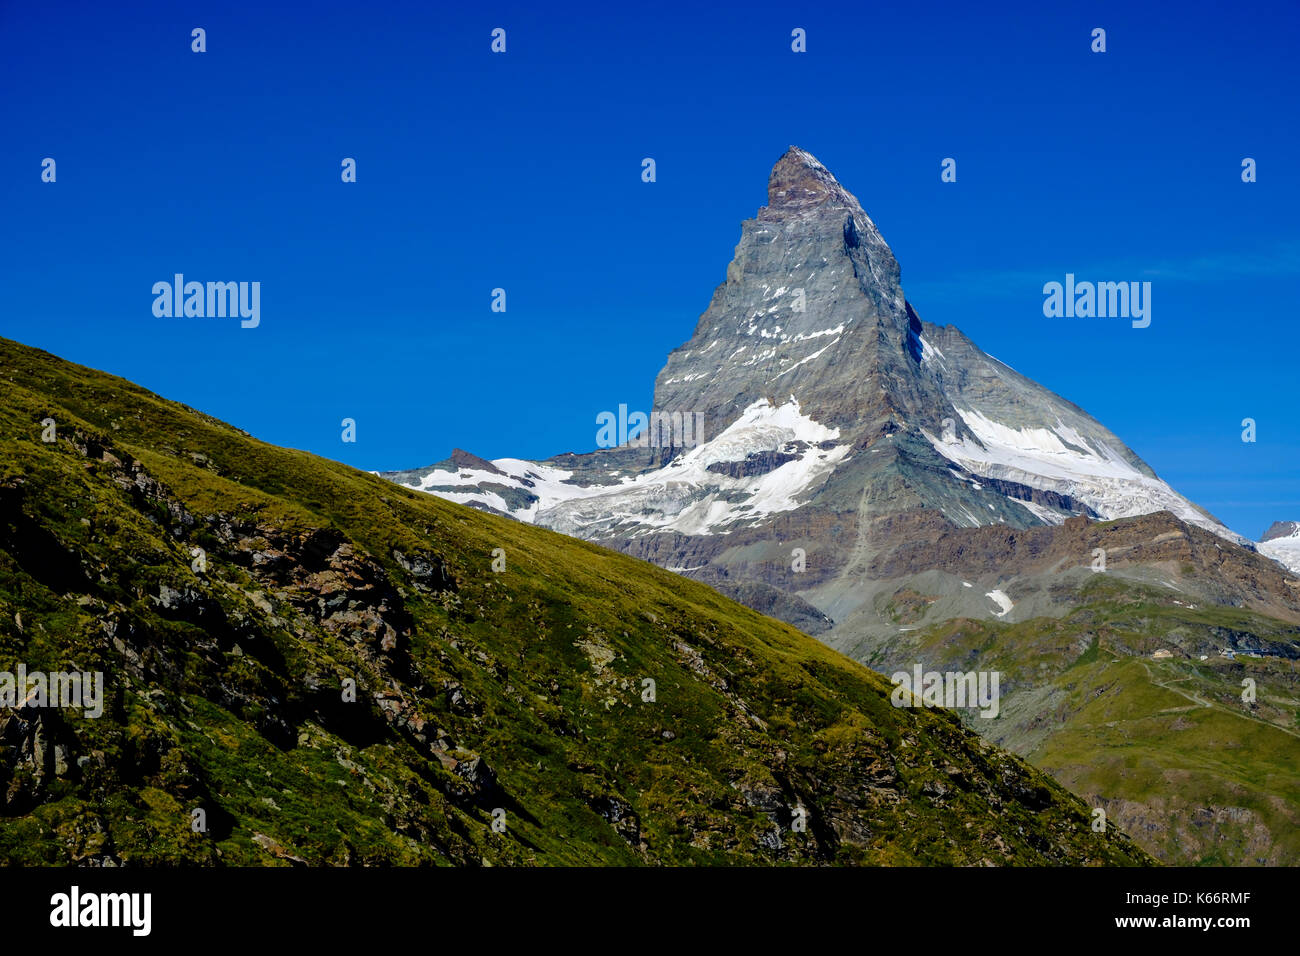 The East and North Face of the Matterhorn, Monte Cervino, with clear blue sky - Stock Image